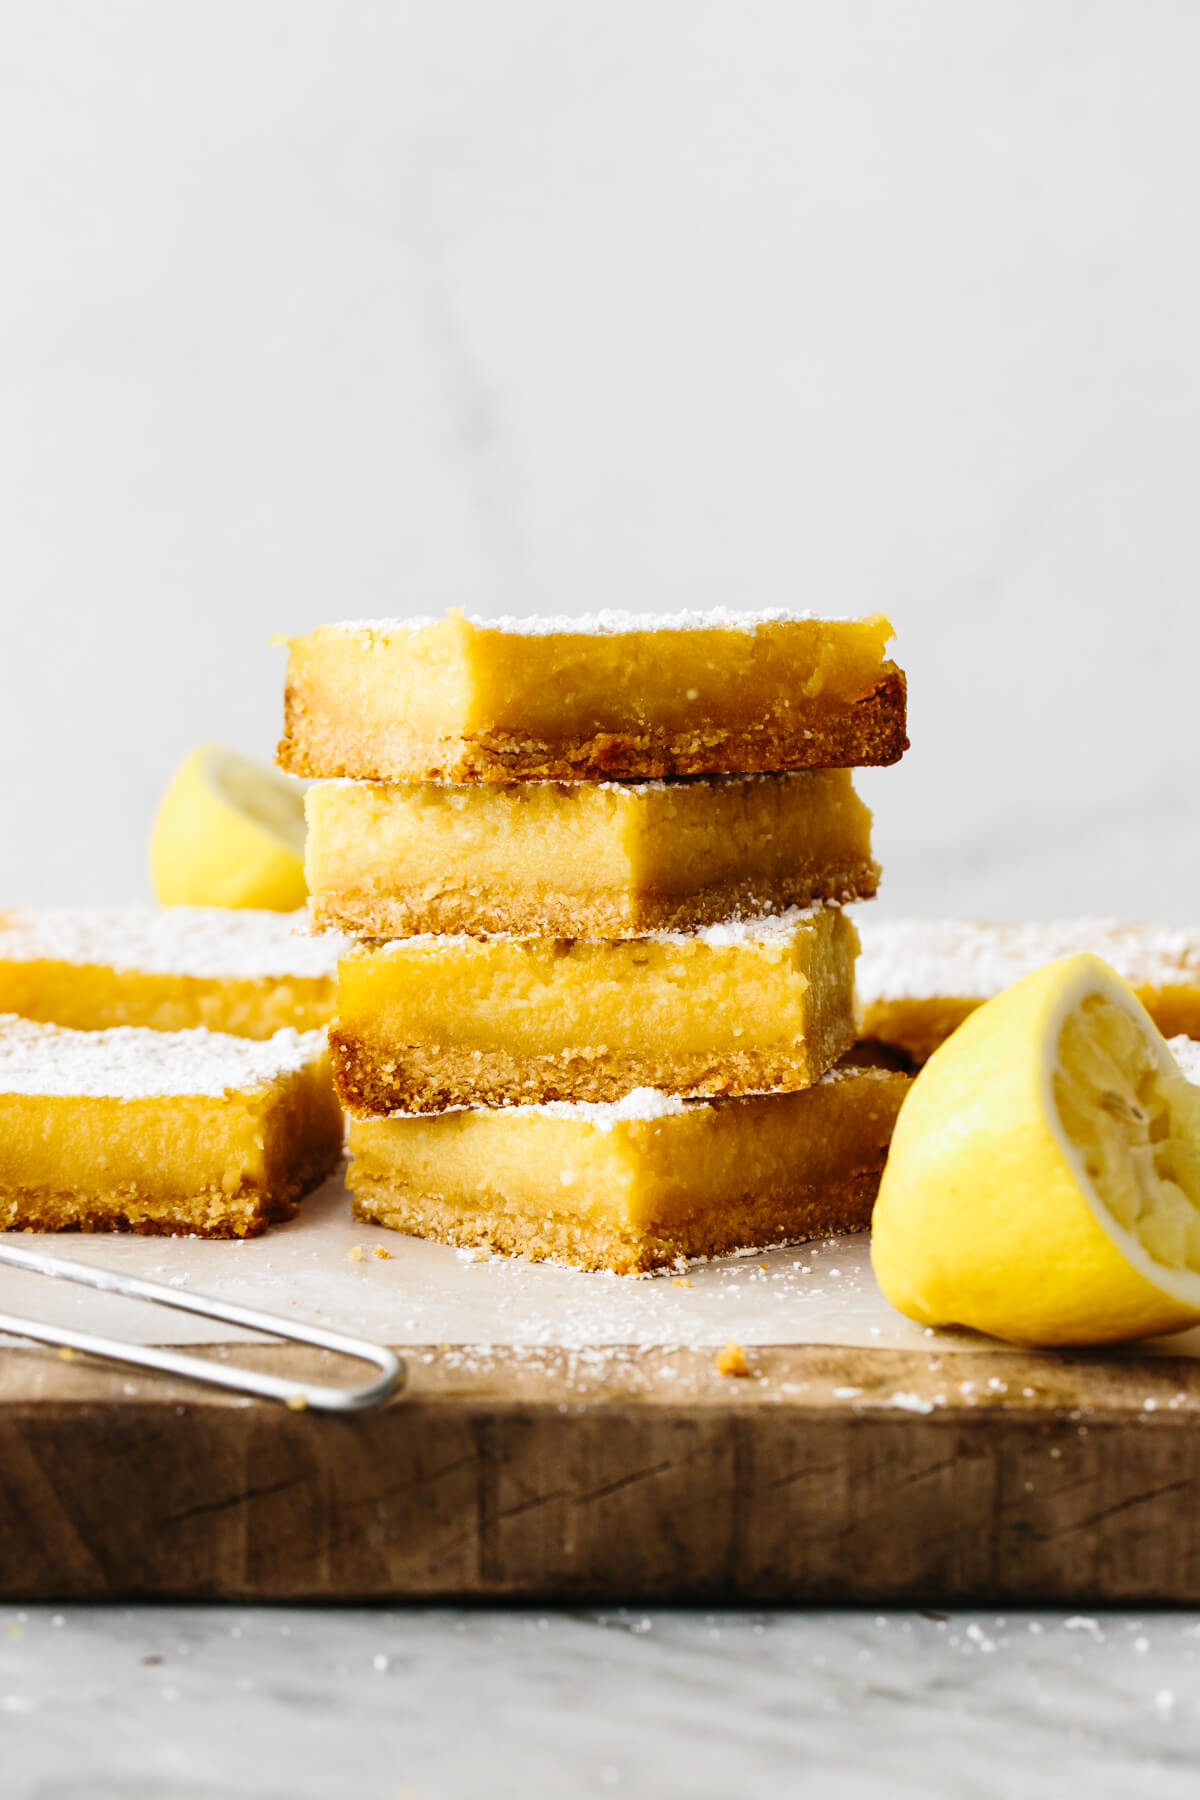 A pile of lemon bars on a wooden board.